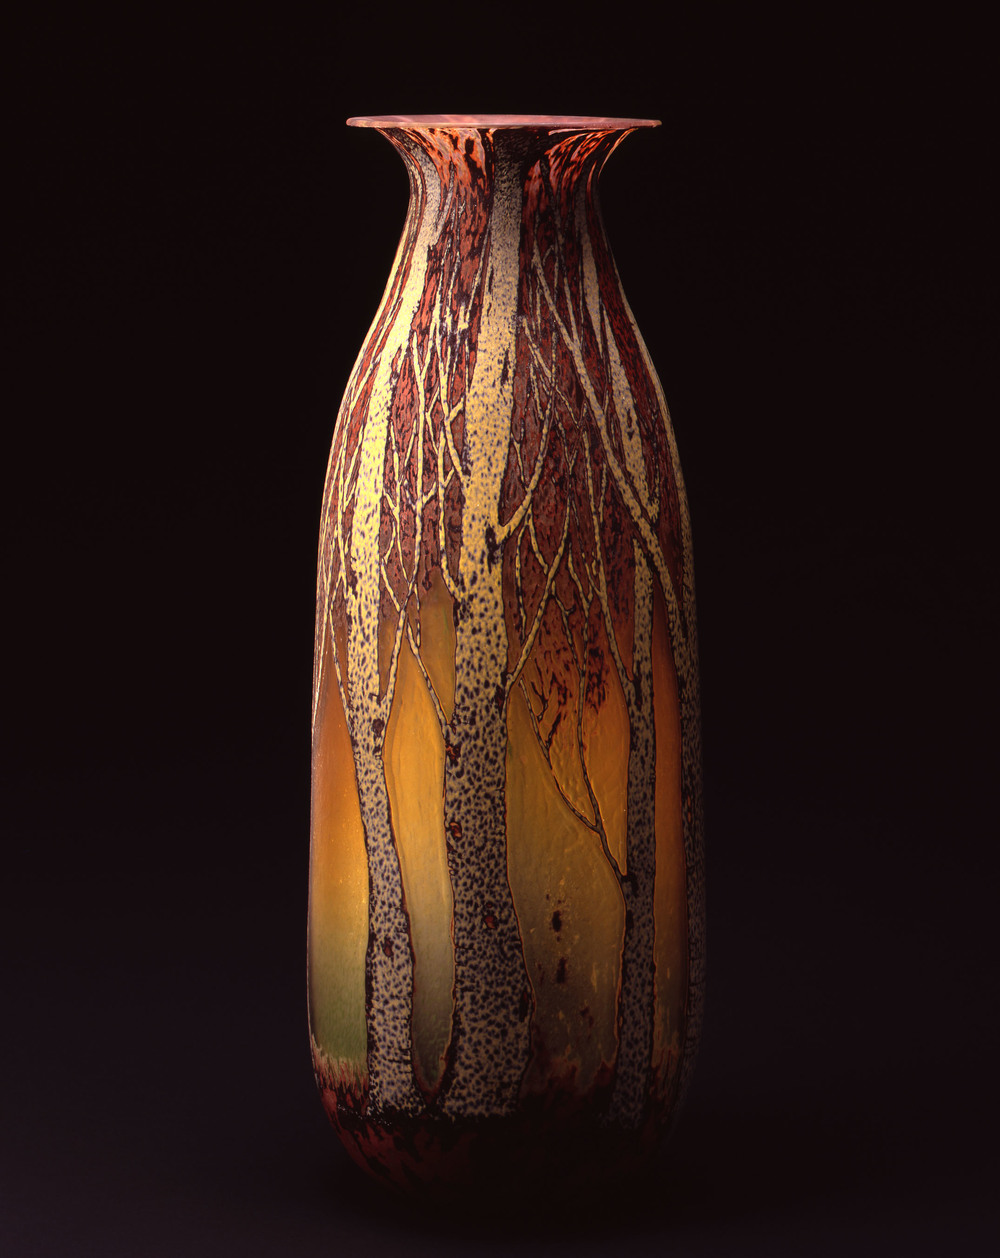 William Morris,  Vase with Aspen Tree Grove    (2004, glass,26 1/2 x 10 x 10 inches), WM.32